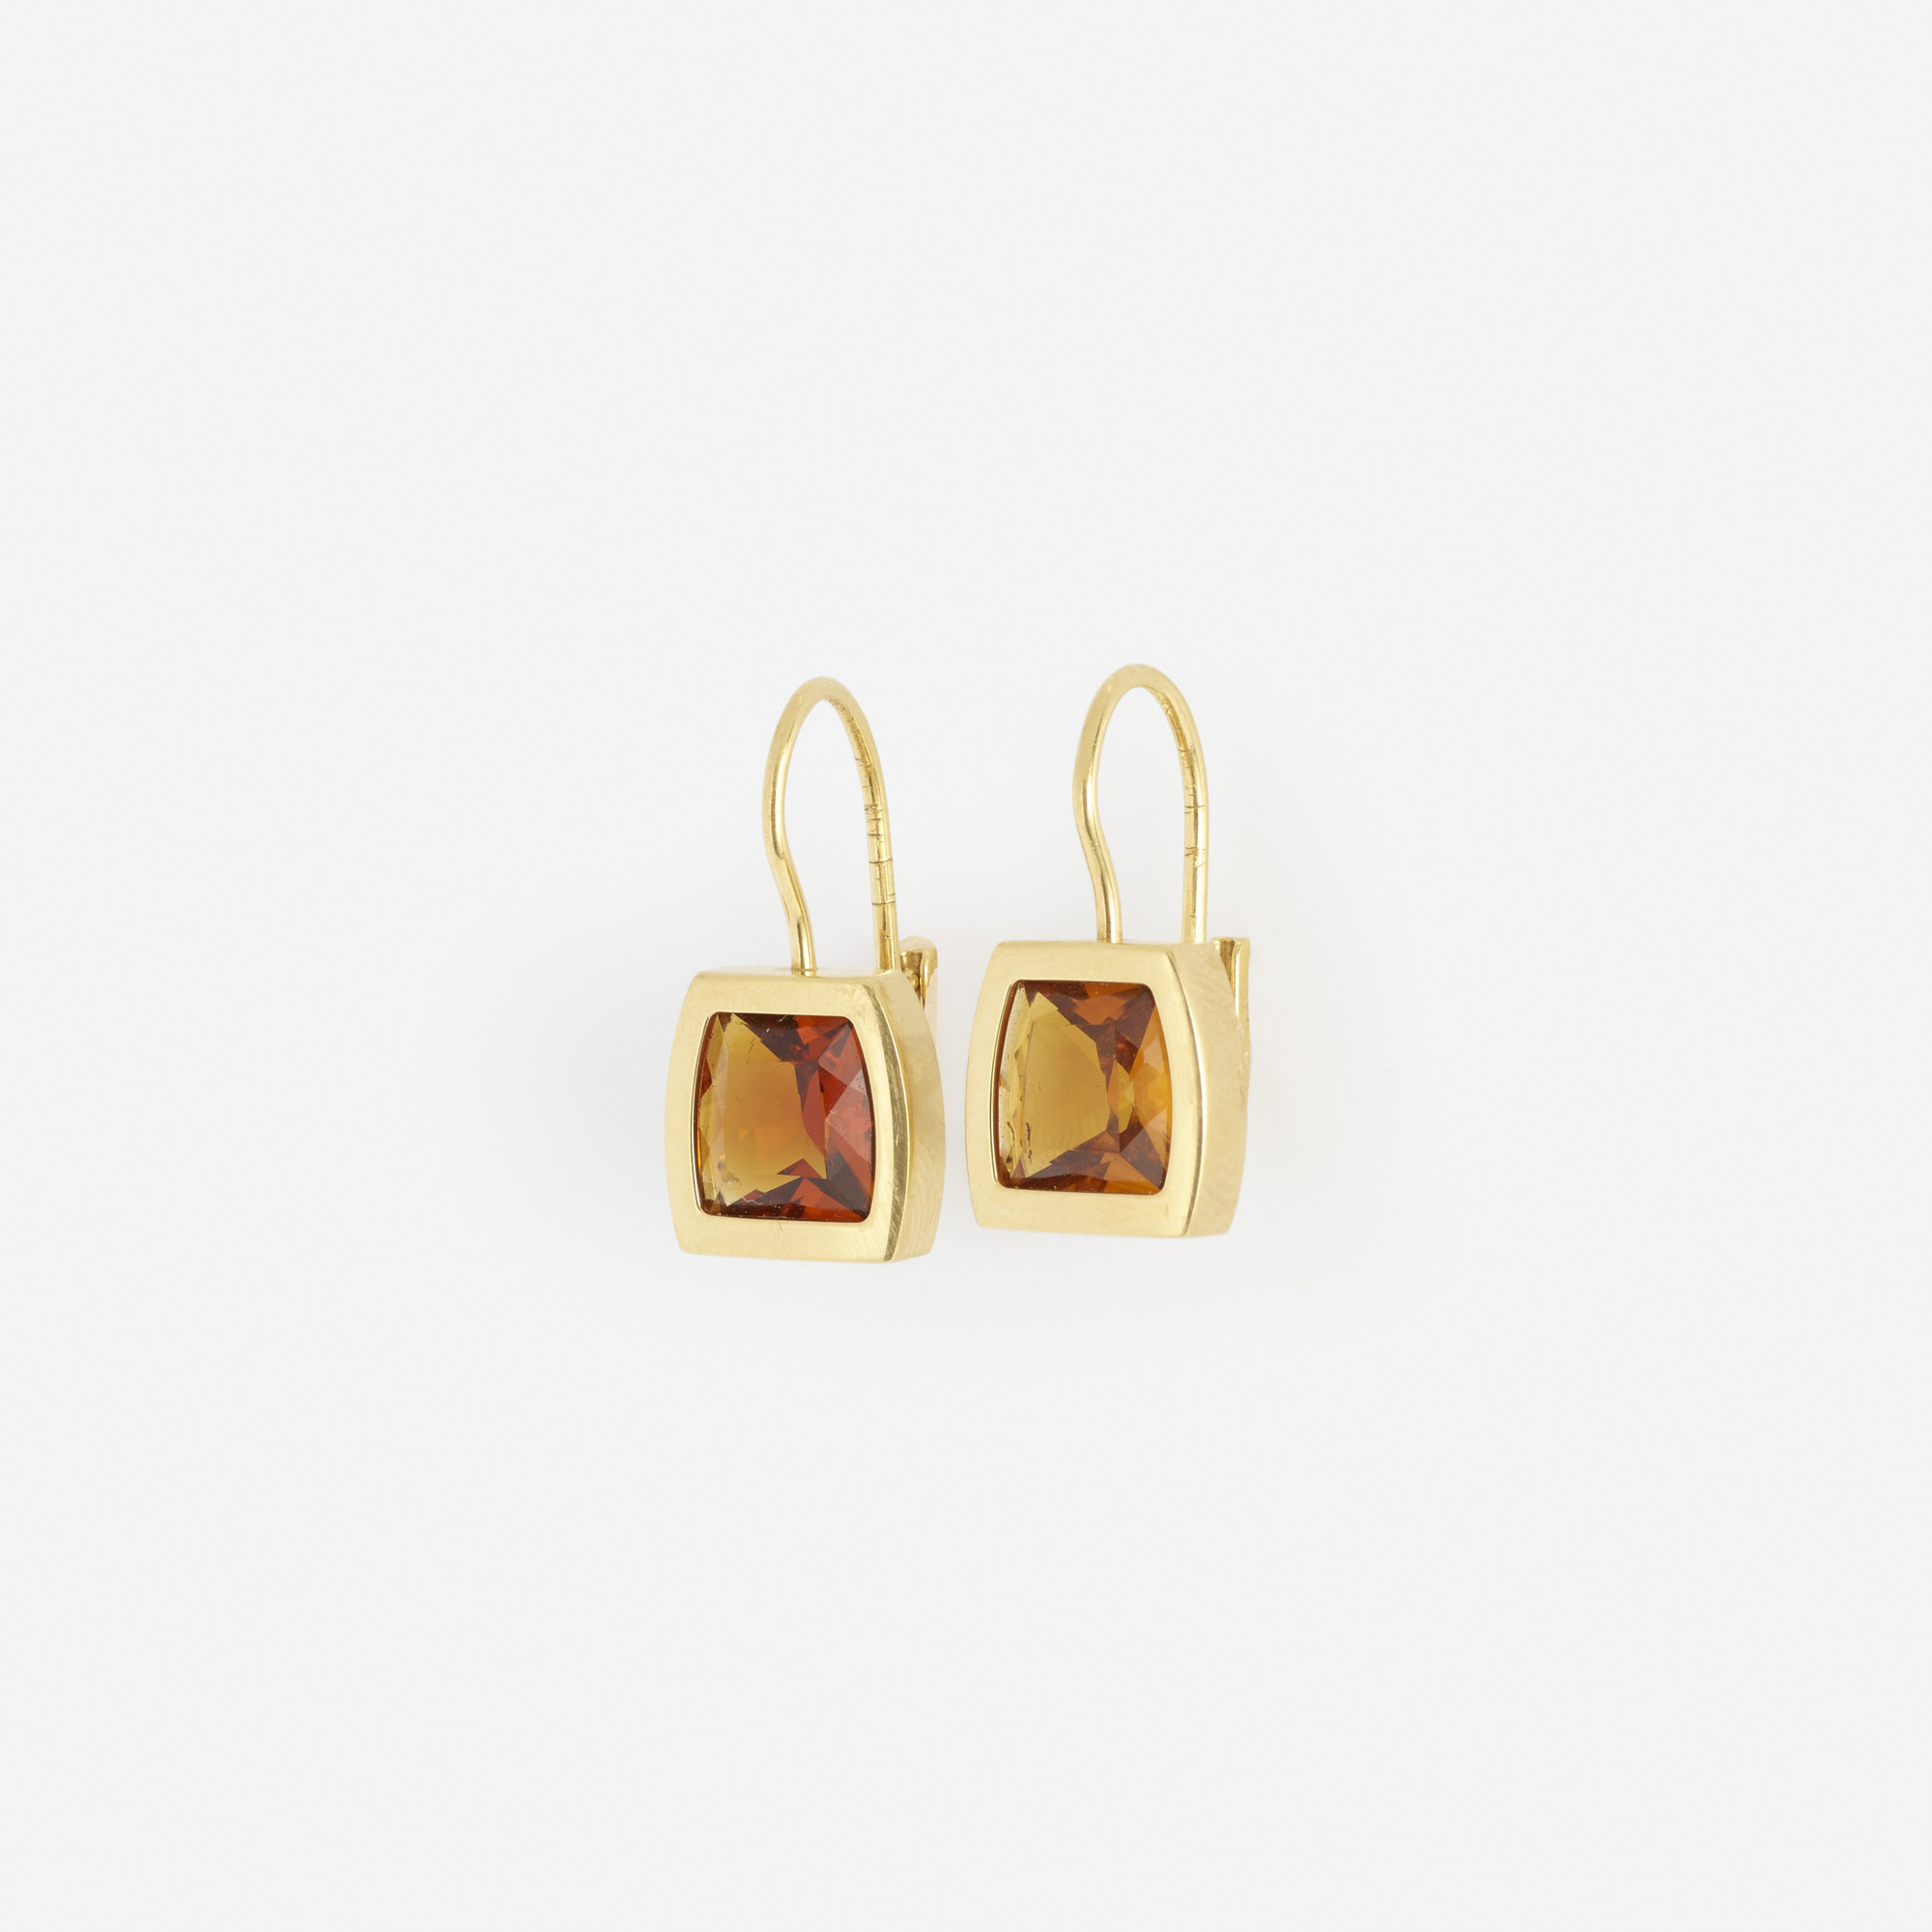 269: Cartier / A pair of gold and citrine earrings (2 of 2)